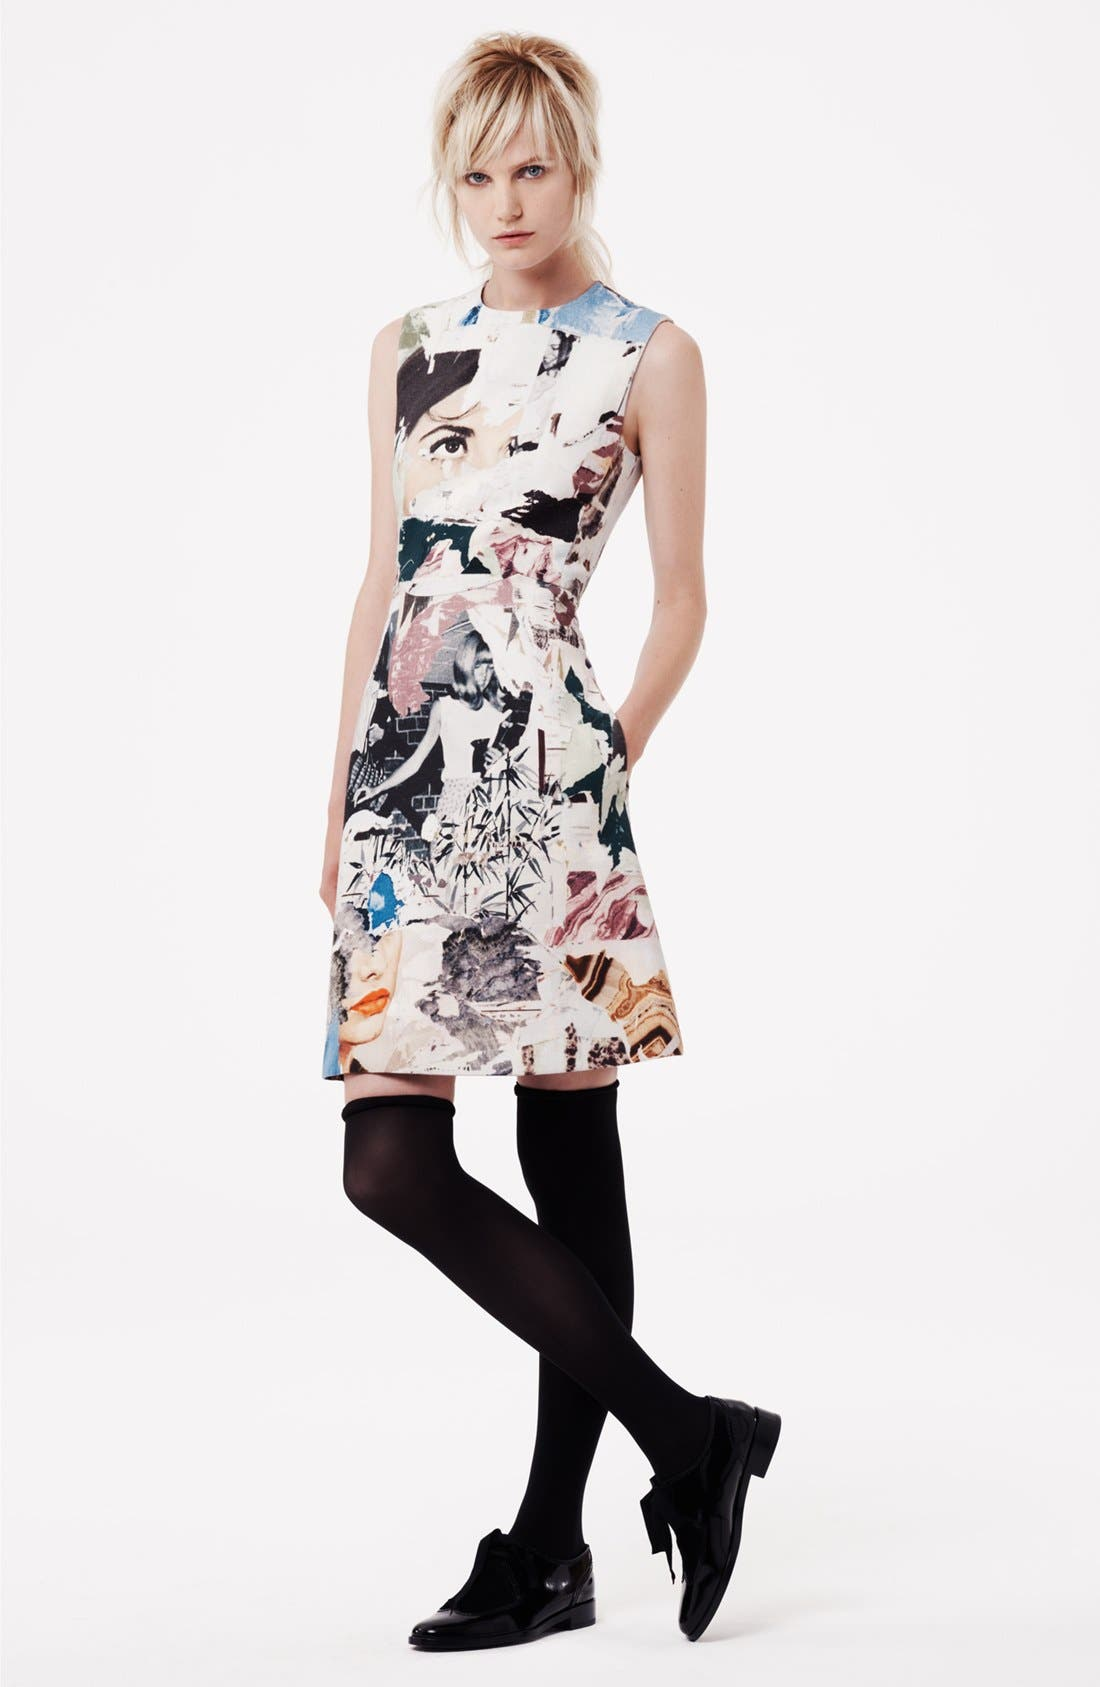 Main Image - Carven Dress & Accessories